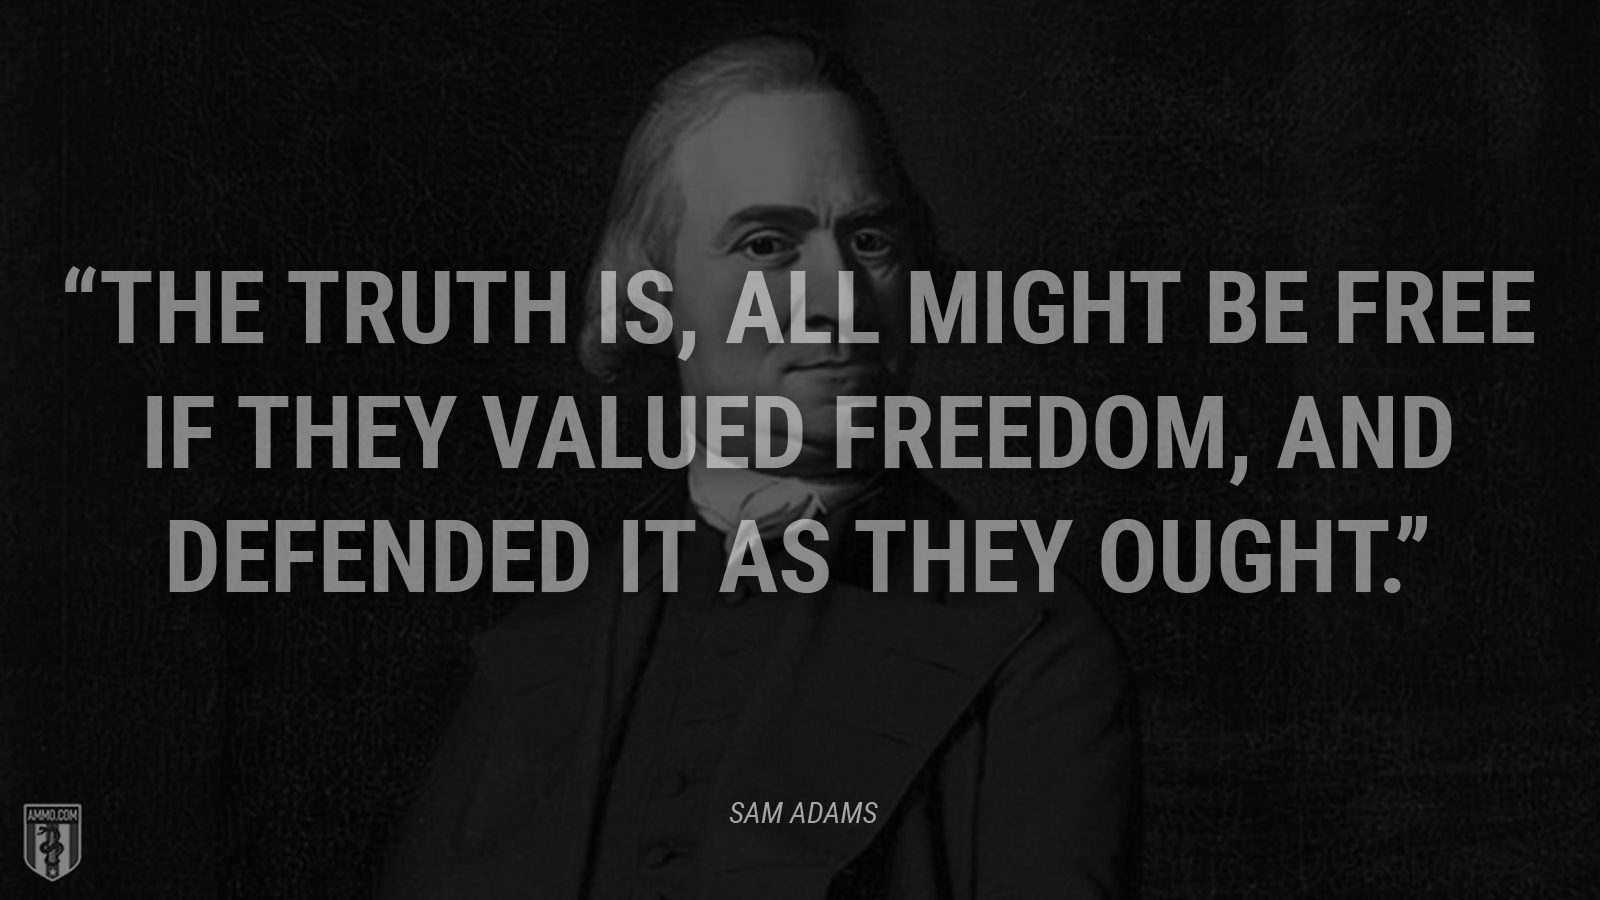 """The truth is, all might be free if they valued freedom, and defended it as they ought."" - Sam Adams"